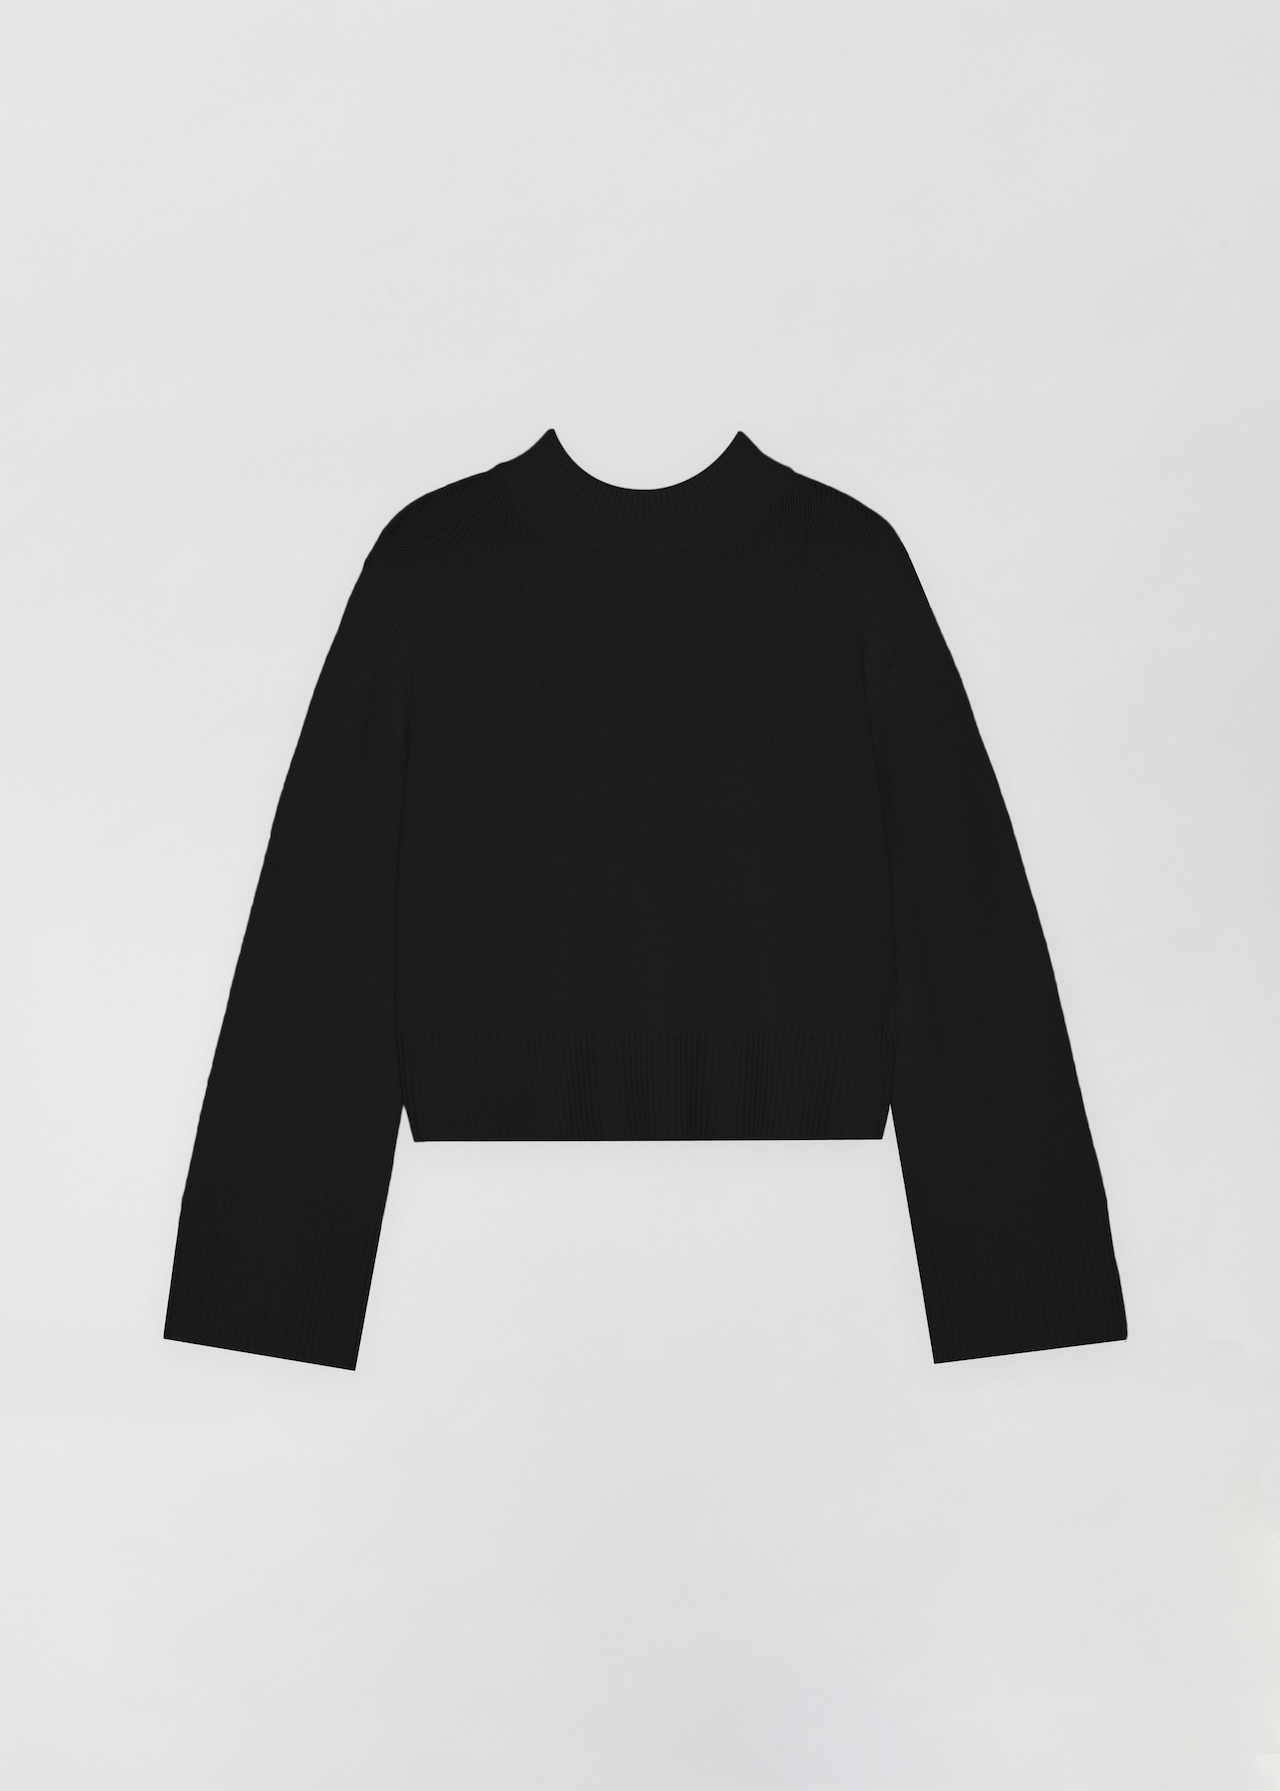 Co Collections Uniform - Boxy Crewneck